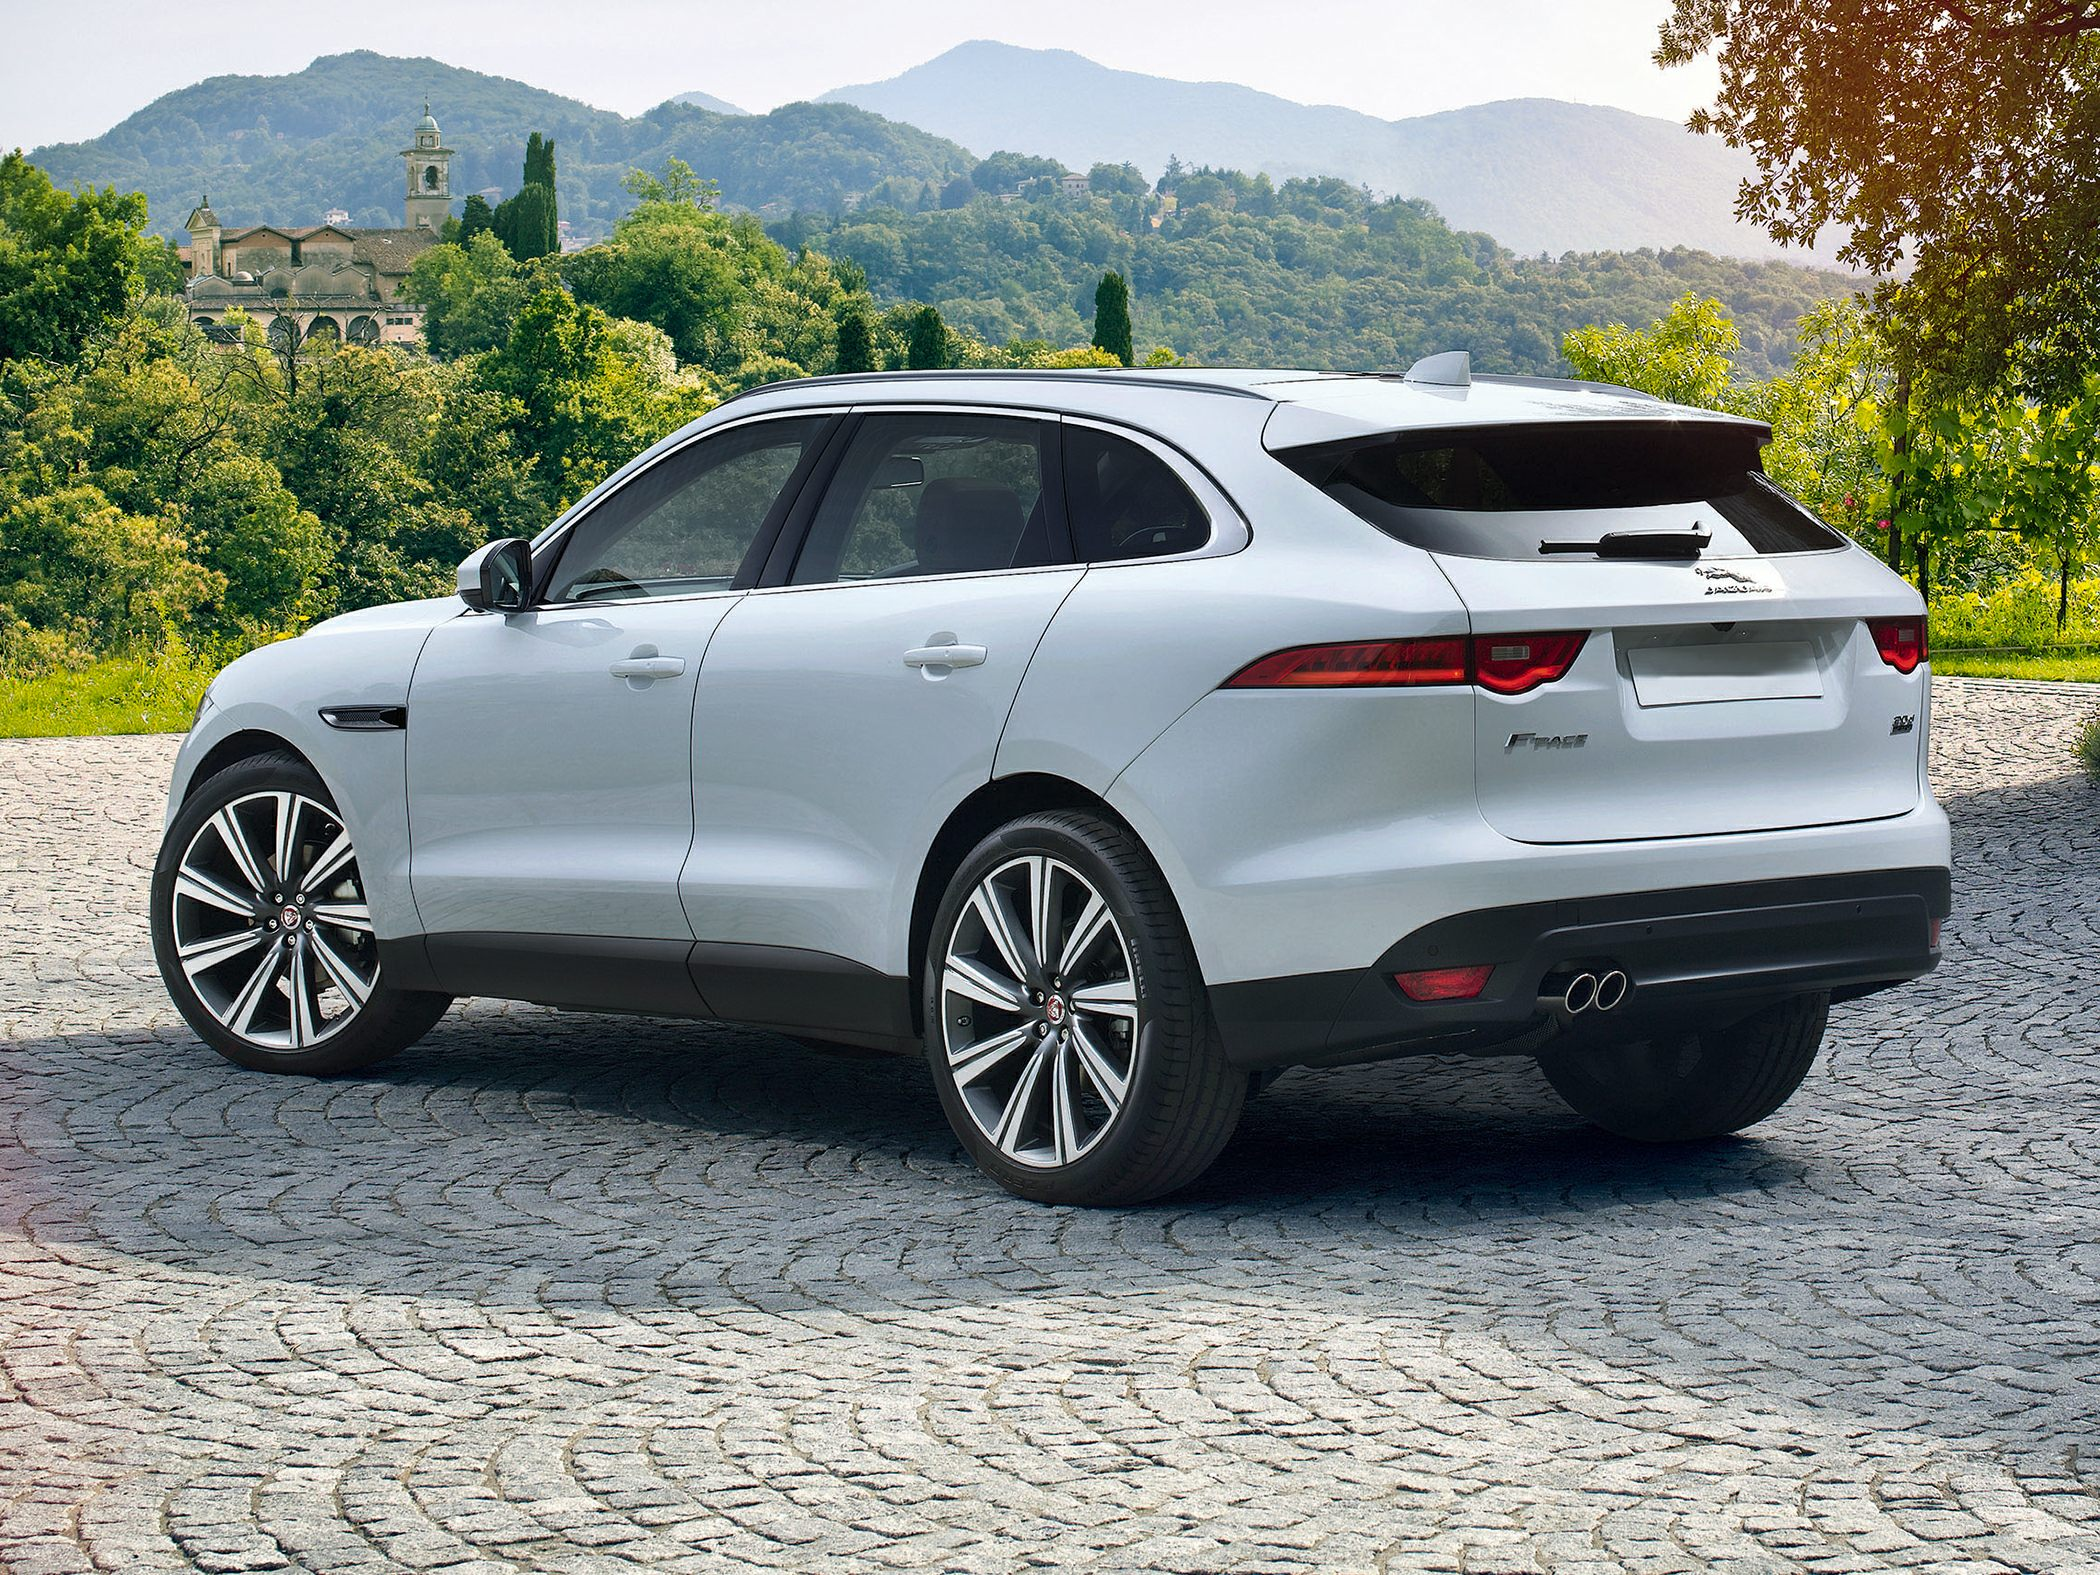 2017 jaguar f pace deals prices incentives leases overview carsdirect. Black Bedroom Furniture Sets. Home Design Ideas